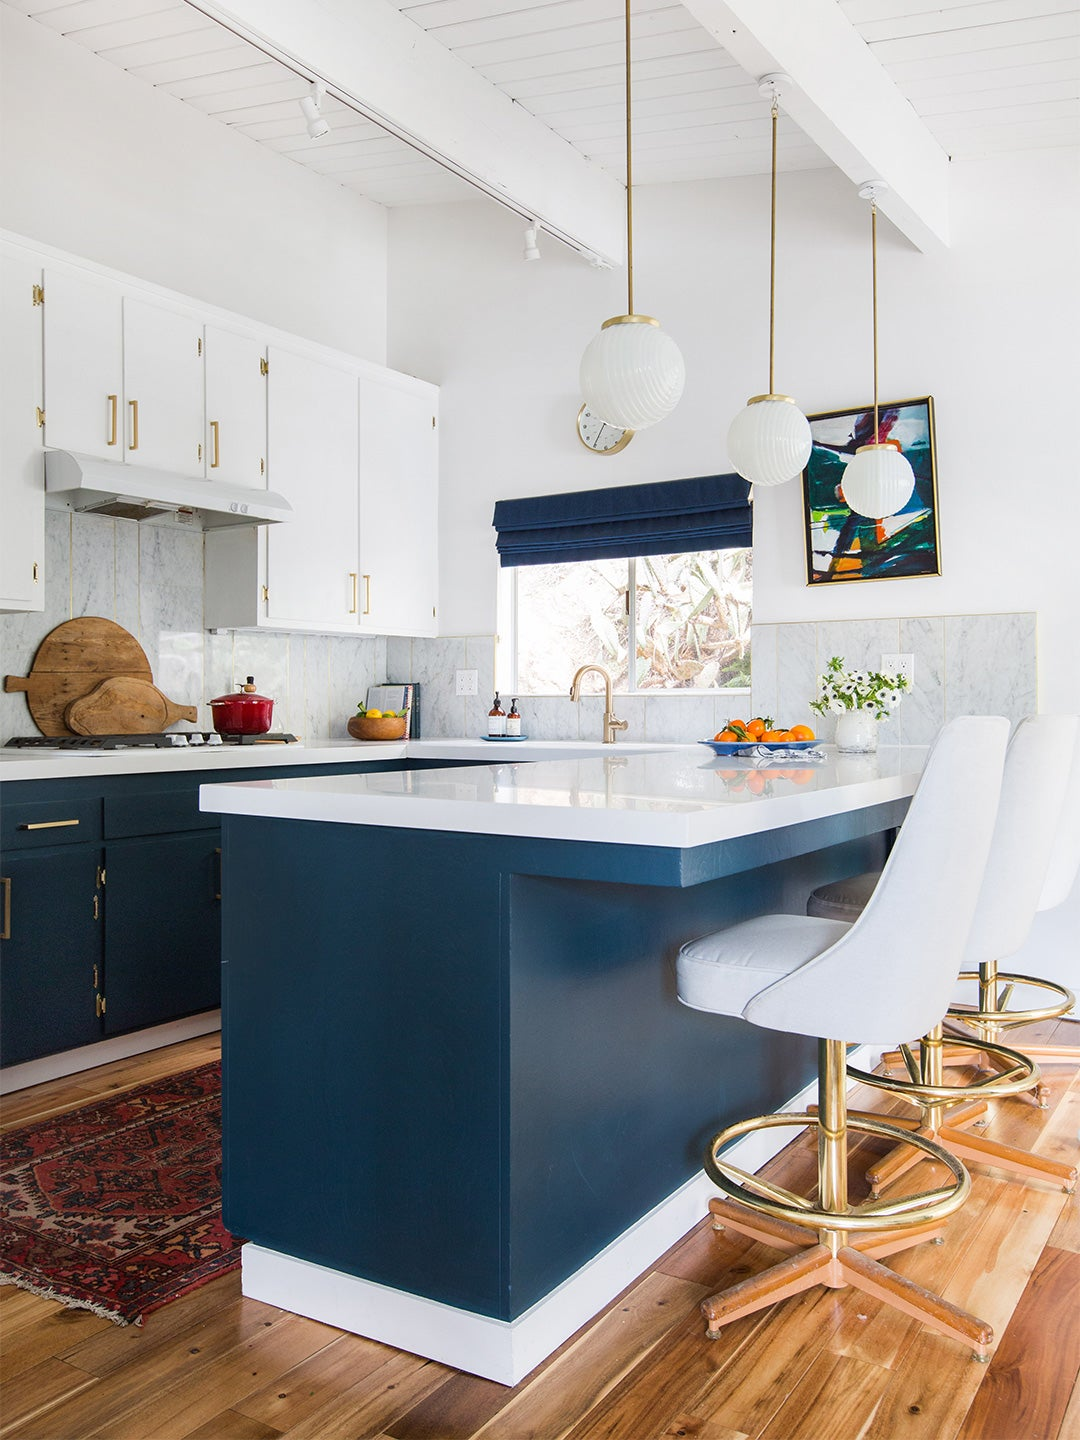 white upper and blue lower cabinets